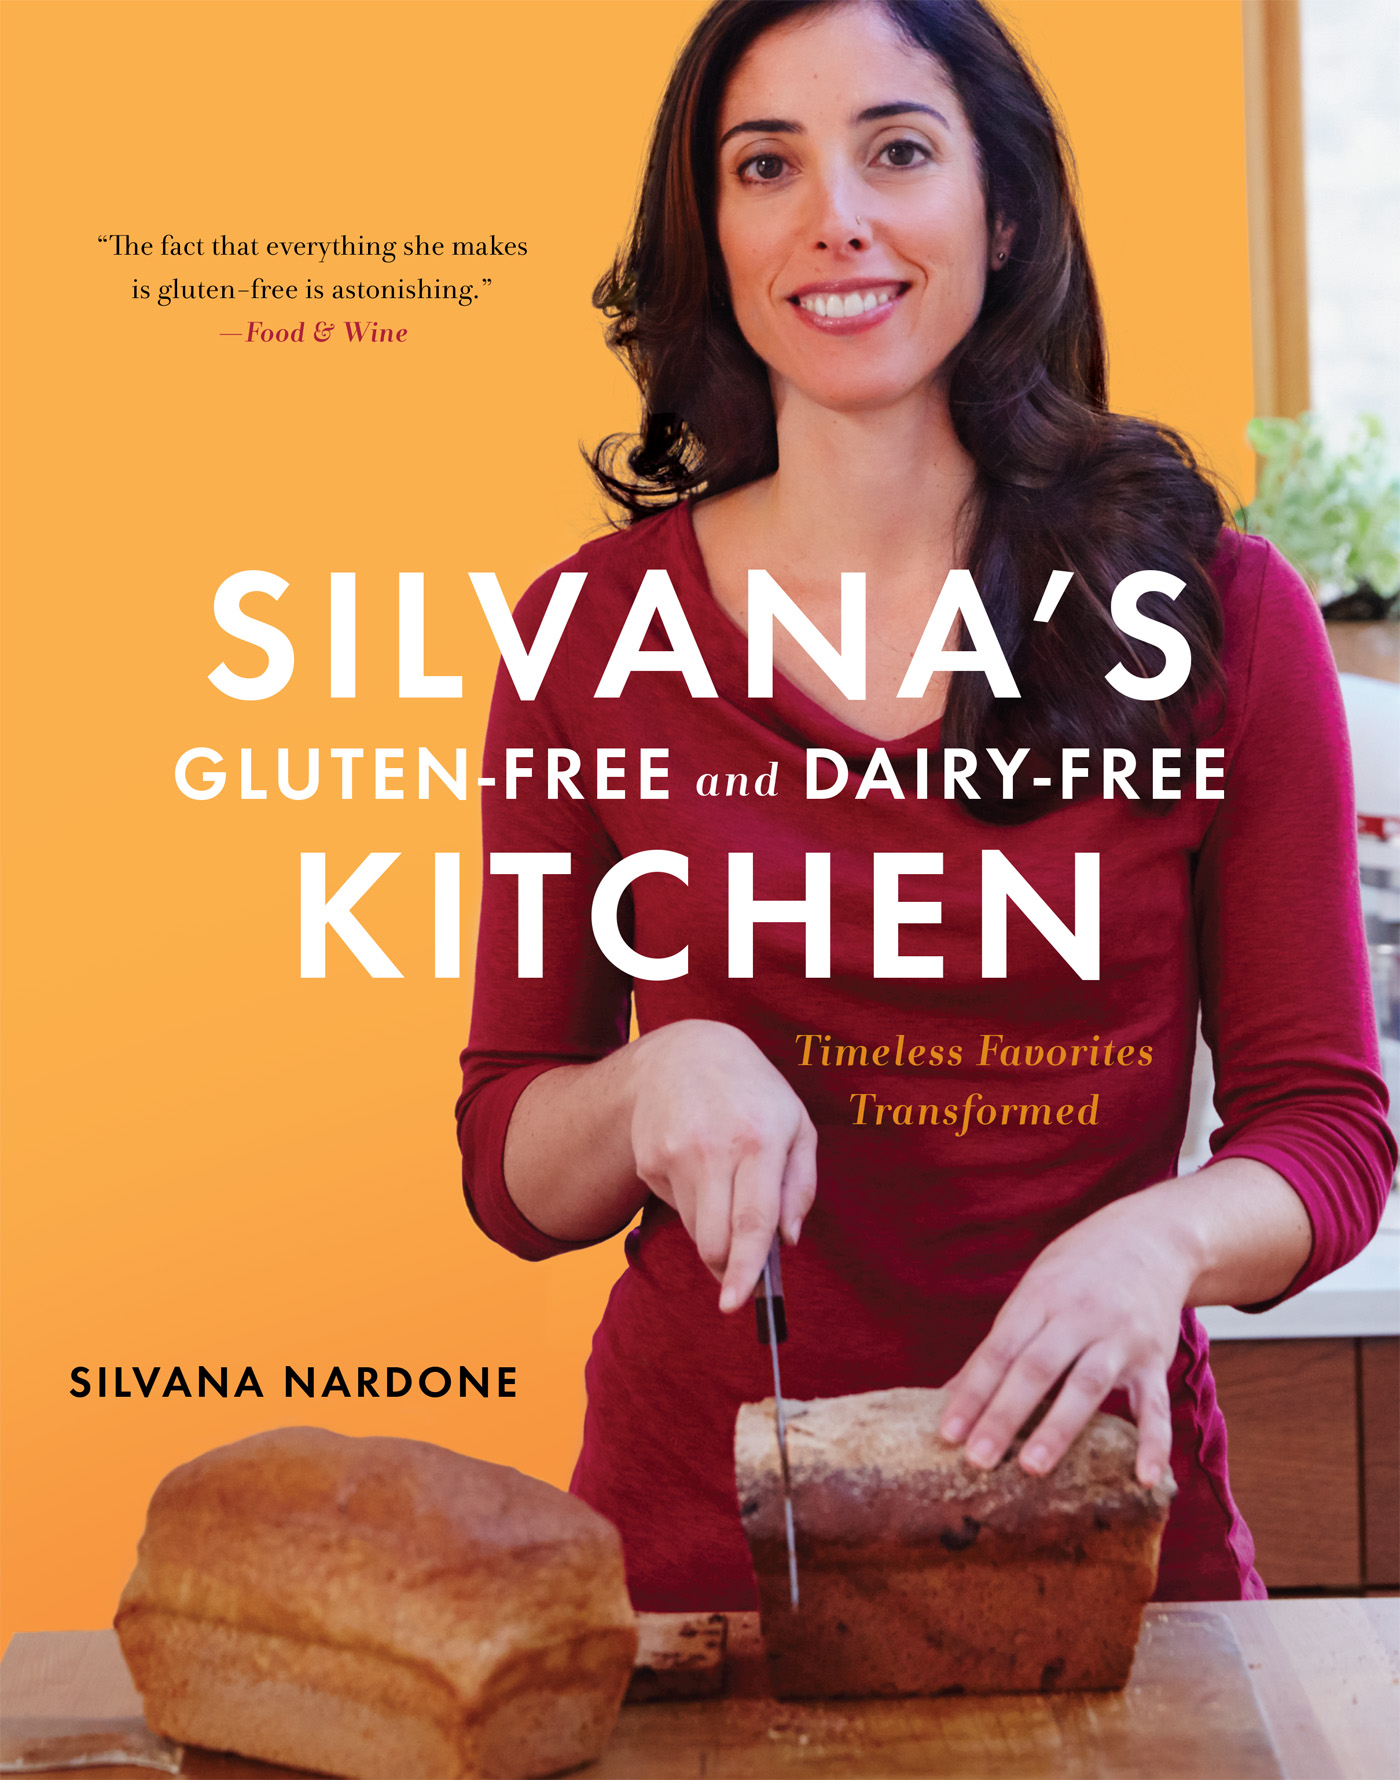 Silvana's Gluten-Free and Dairy-Free Kitchen – Crispy Fried Chicken